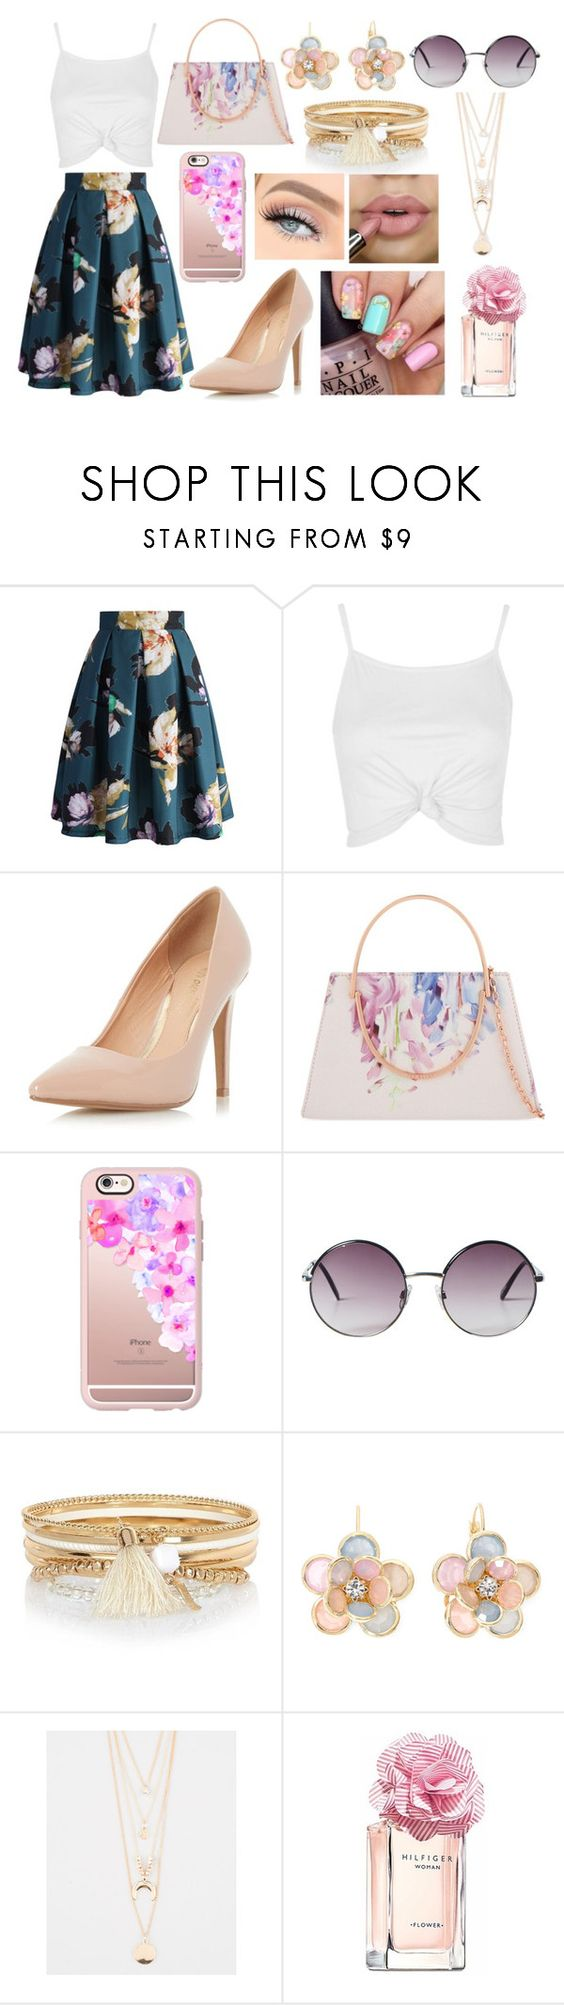 """""""Untitled #8"""" by maryamy565 ❤ liked on Polyvore featuring Chicwish, Topshop, Dorothy Perkins, Ted Baker, Casetify, Monki, River Island, Mixit, Full Tilt and Tommy Hilfiger"""